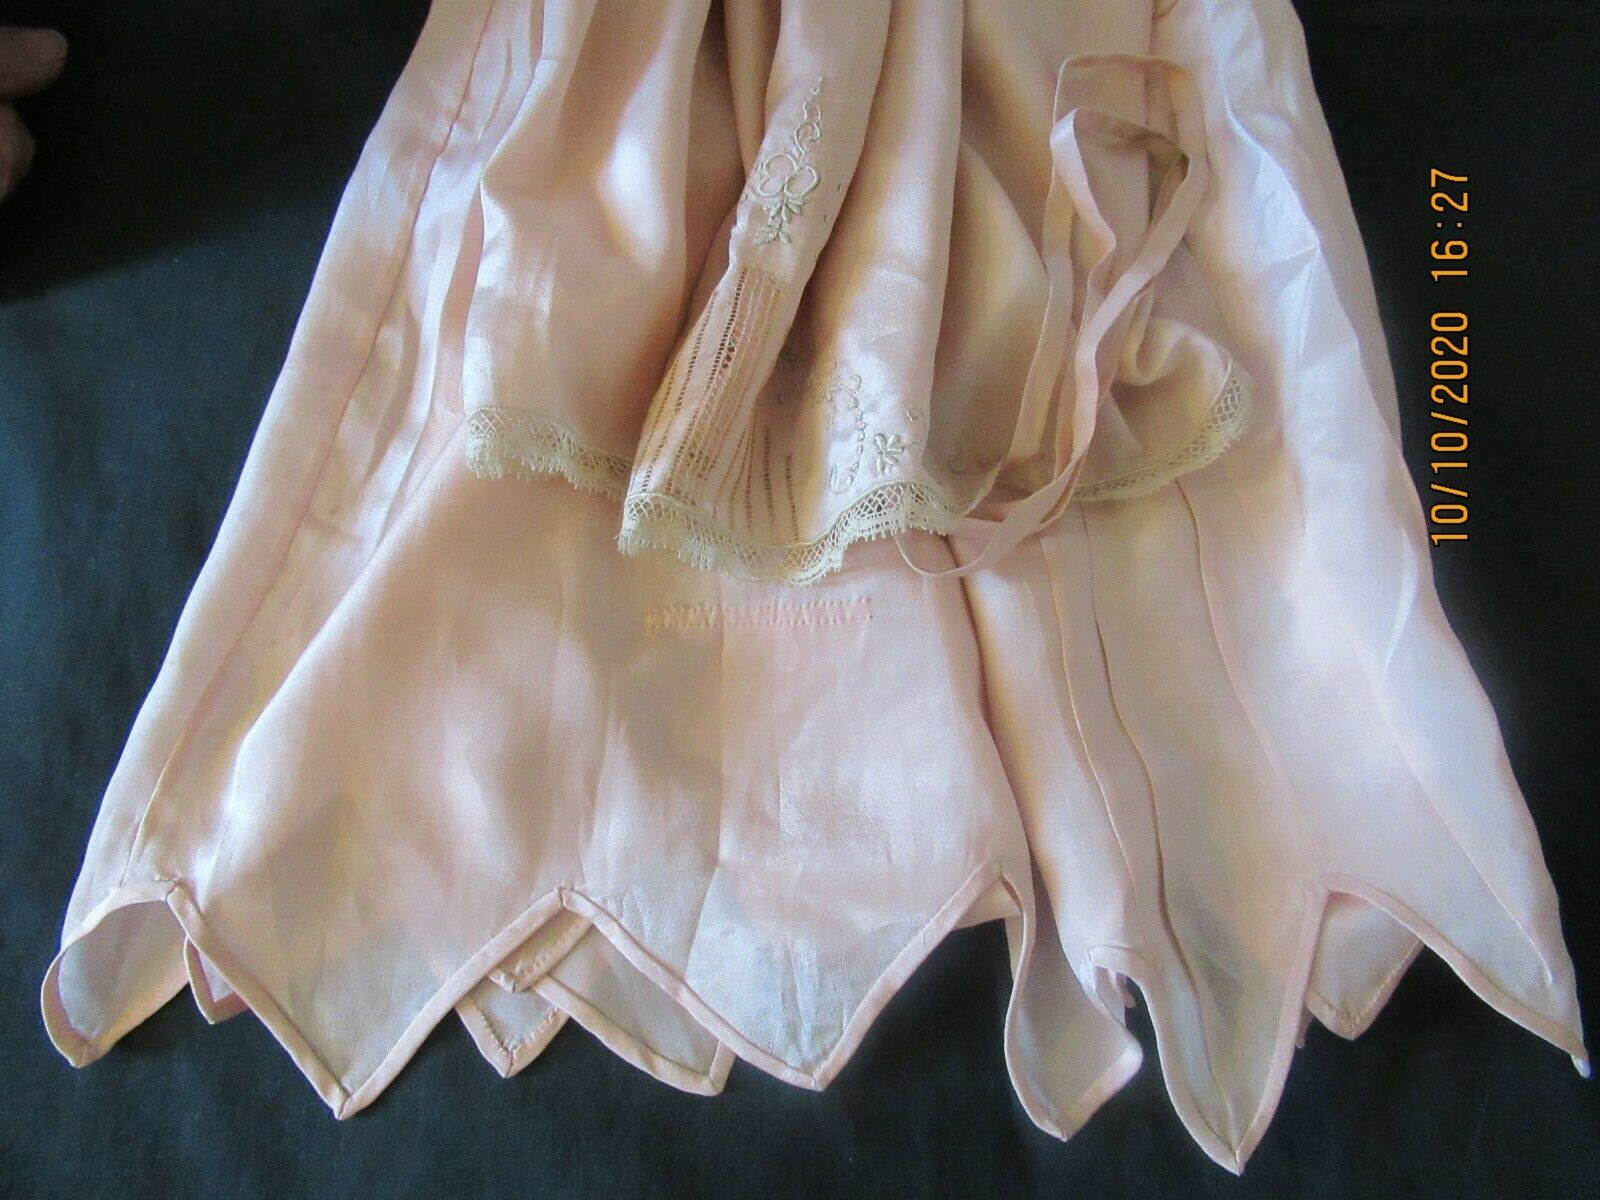 Antique Edwardian Camisole Teddy Embroidered Lace  - image 2